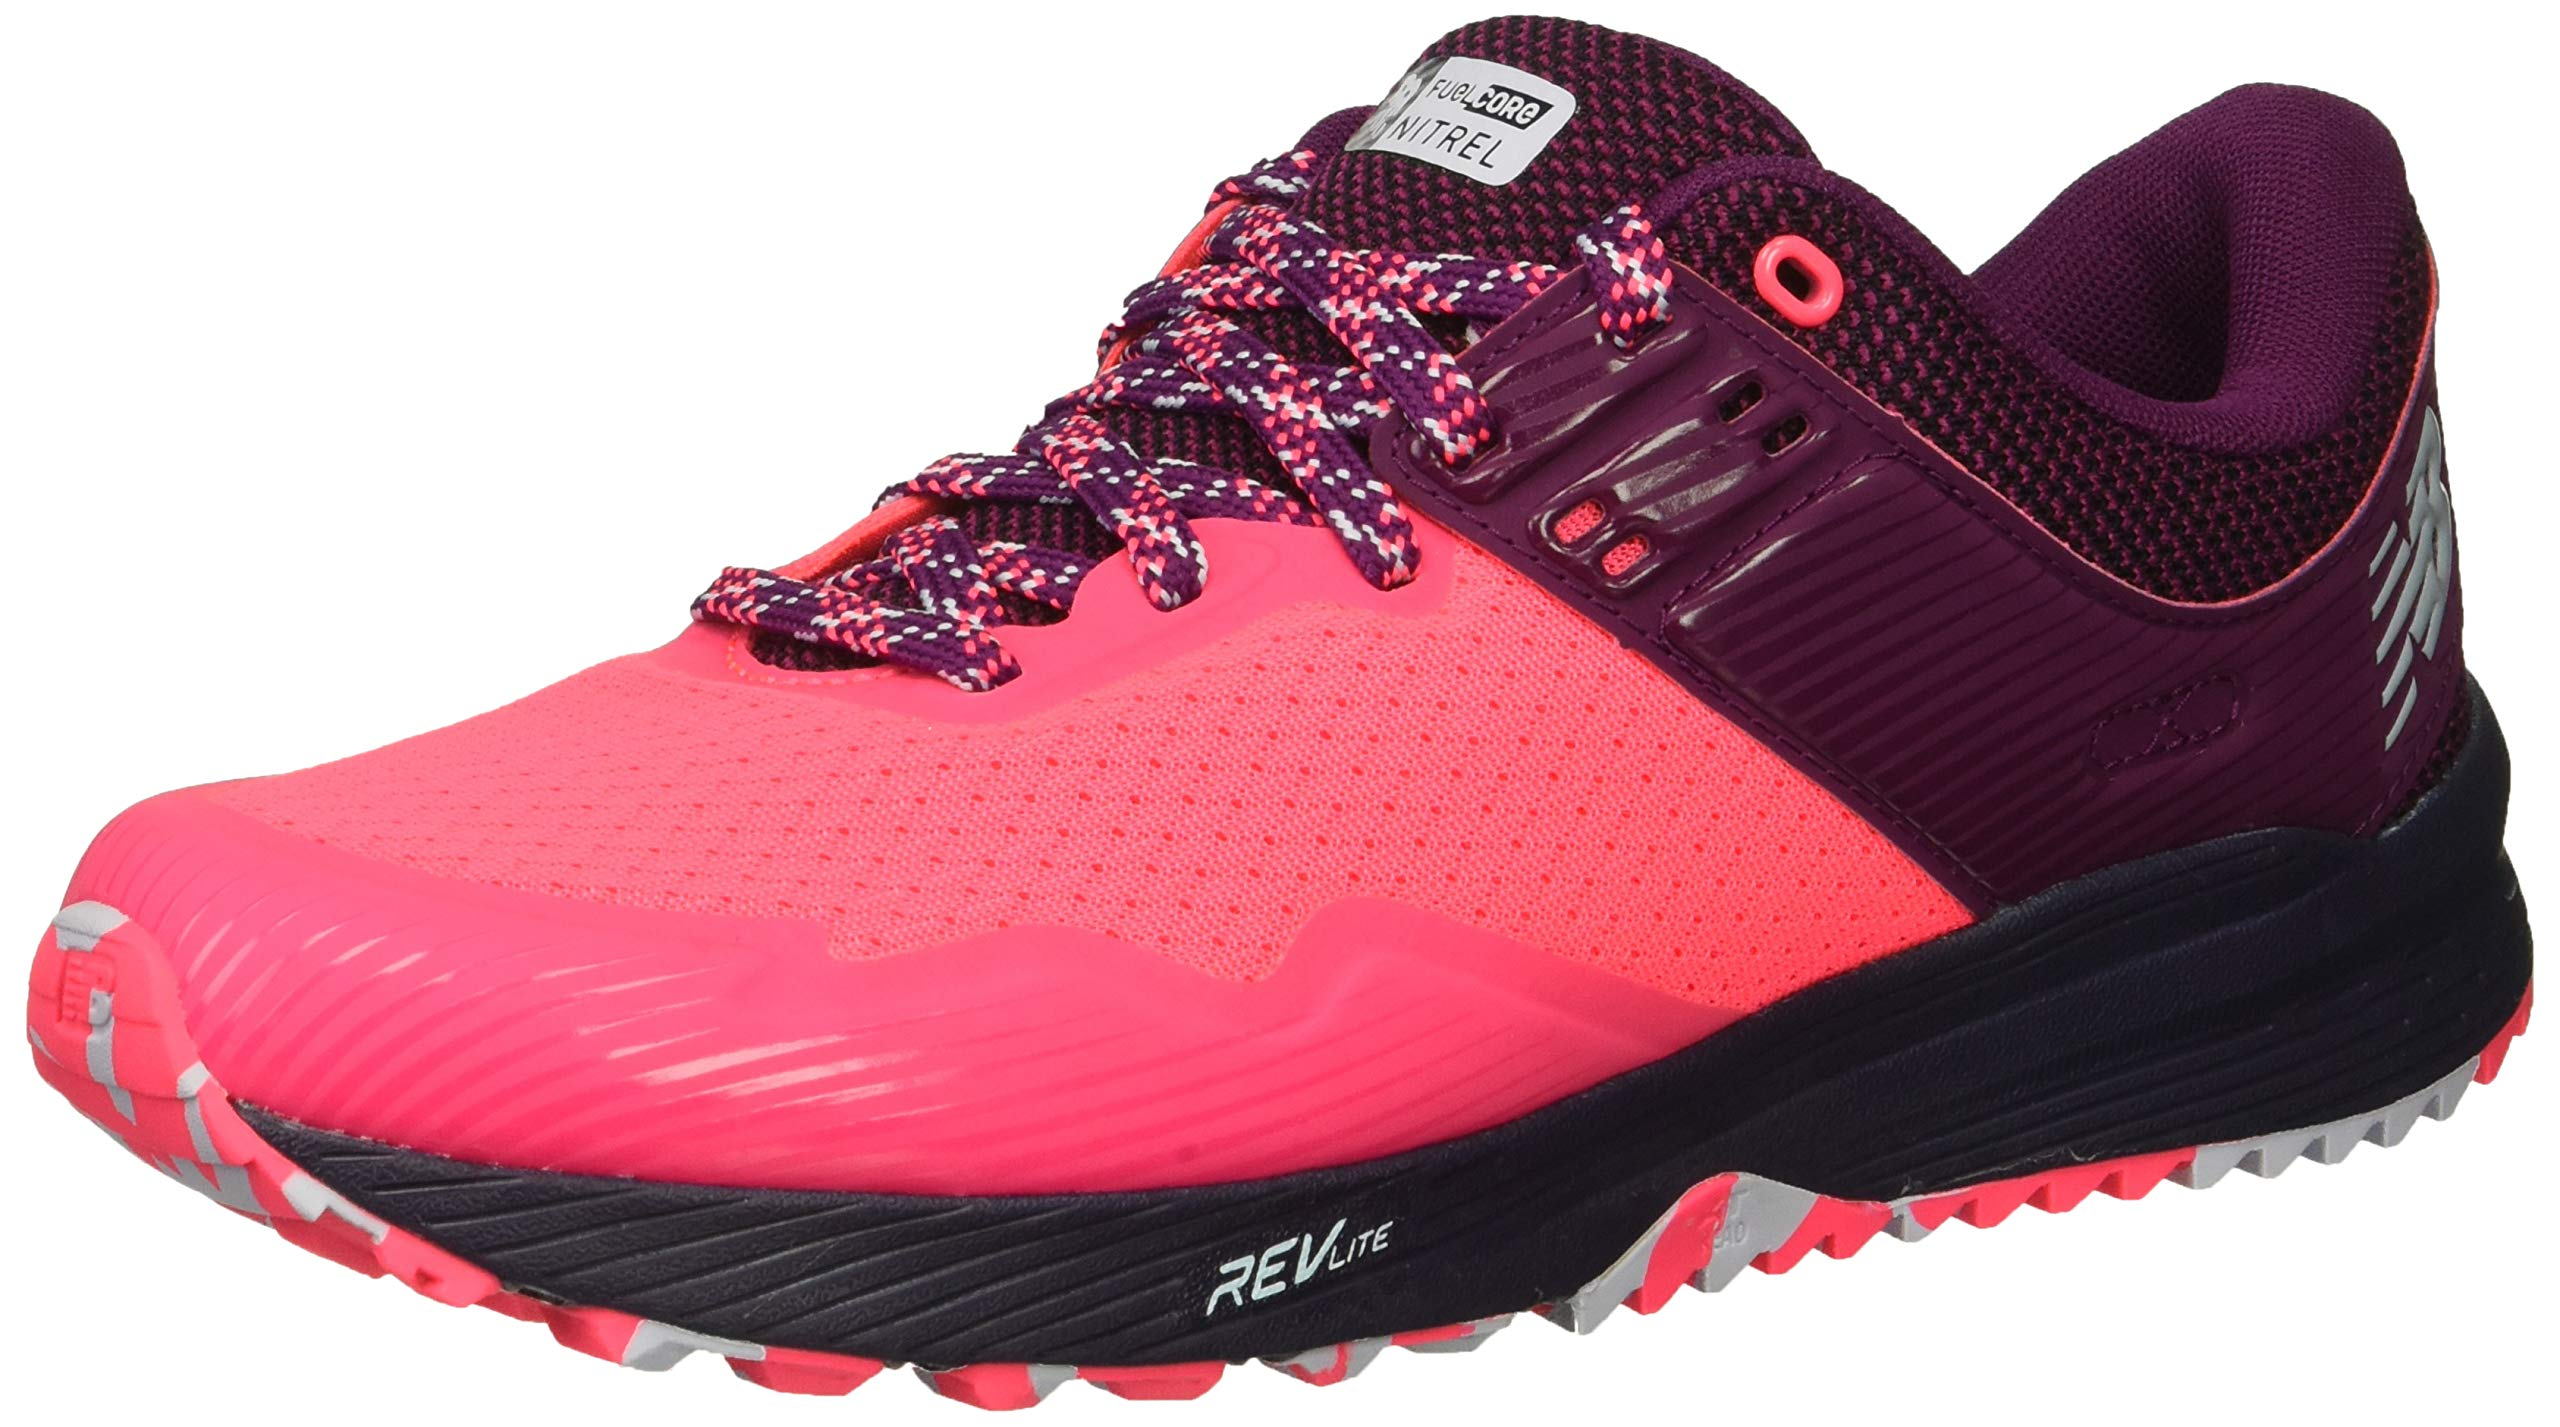 New Balance Women's Nitrel V2 FuelCore Trail Running Shoe Pink zing/Claret/Pigment 5 B US by New Balance (Image #1)